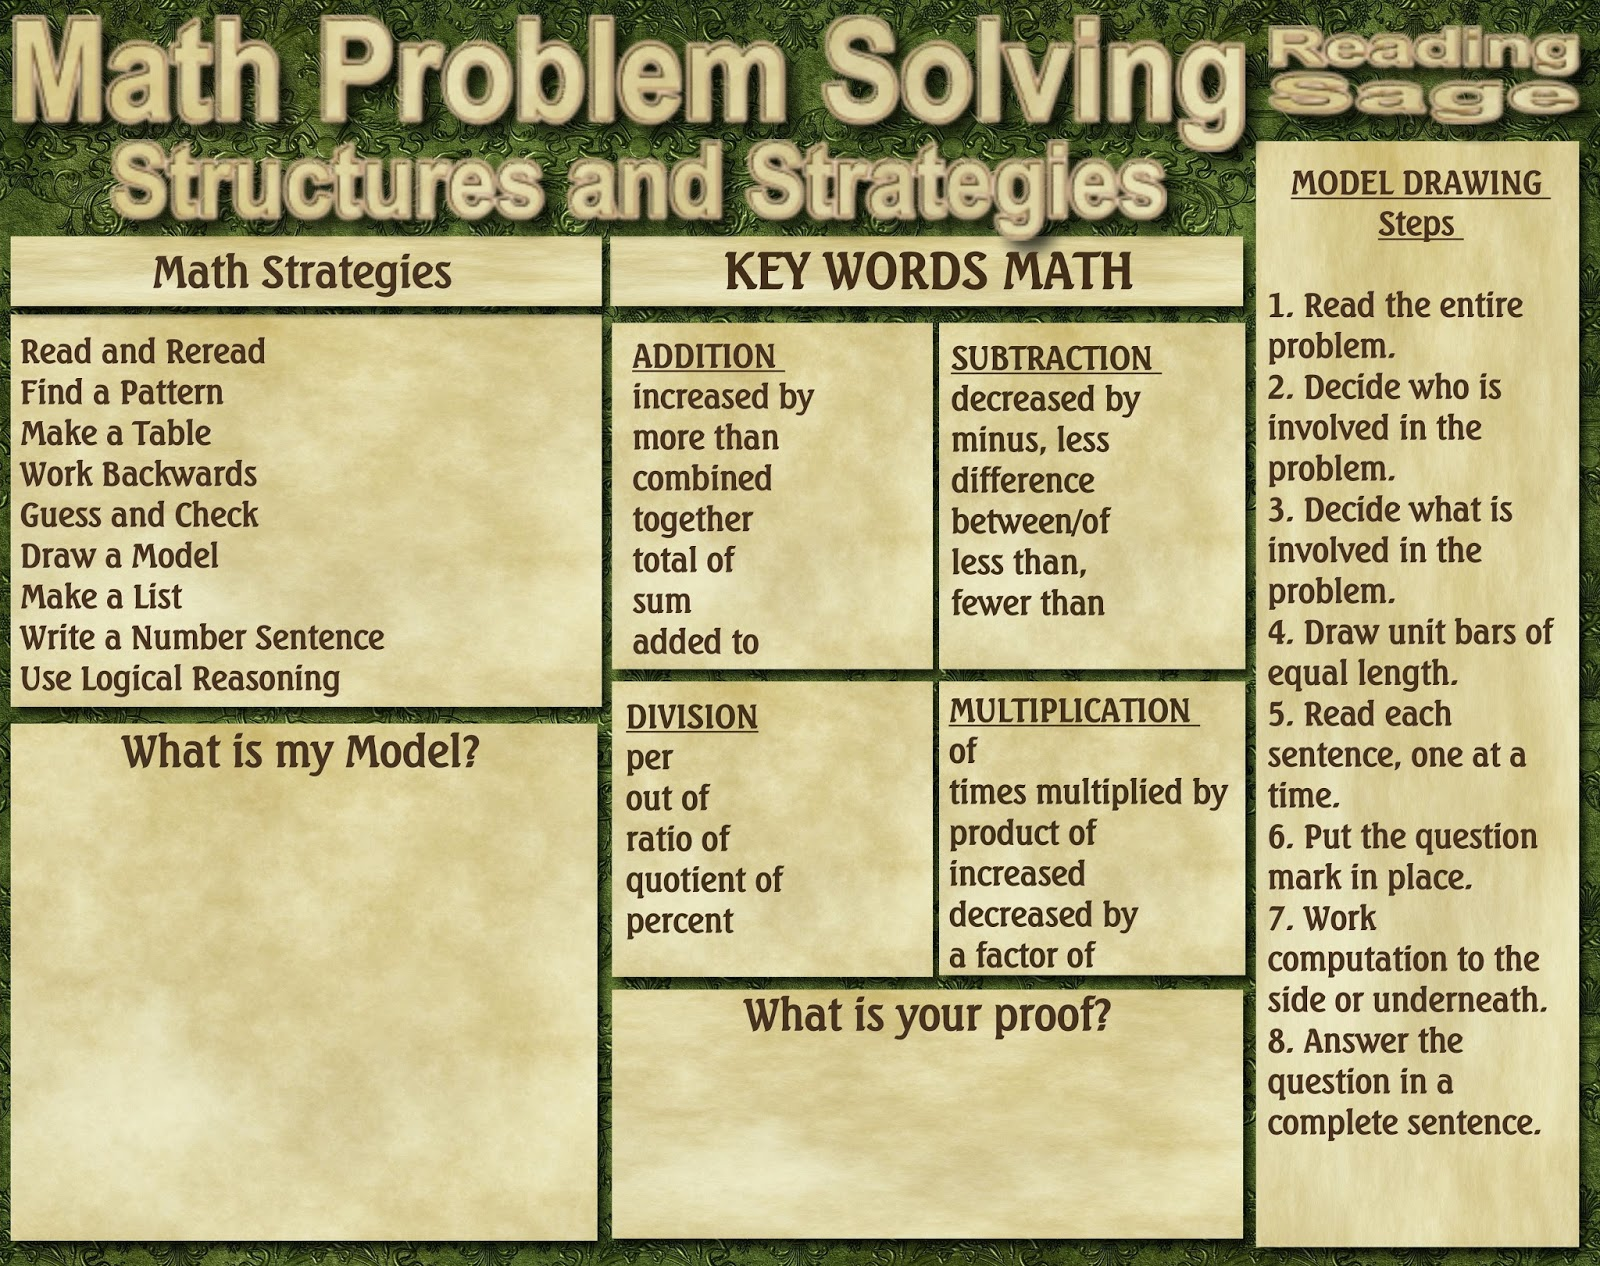 math problem solving strategies Problem-solving strategies: research findings from mathematics olympiads cheung pak-hong department of curriculum studies the university of hong kong.